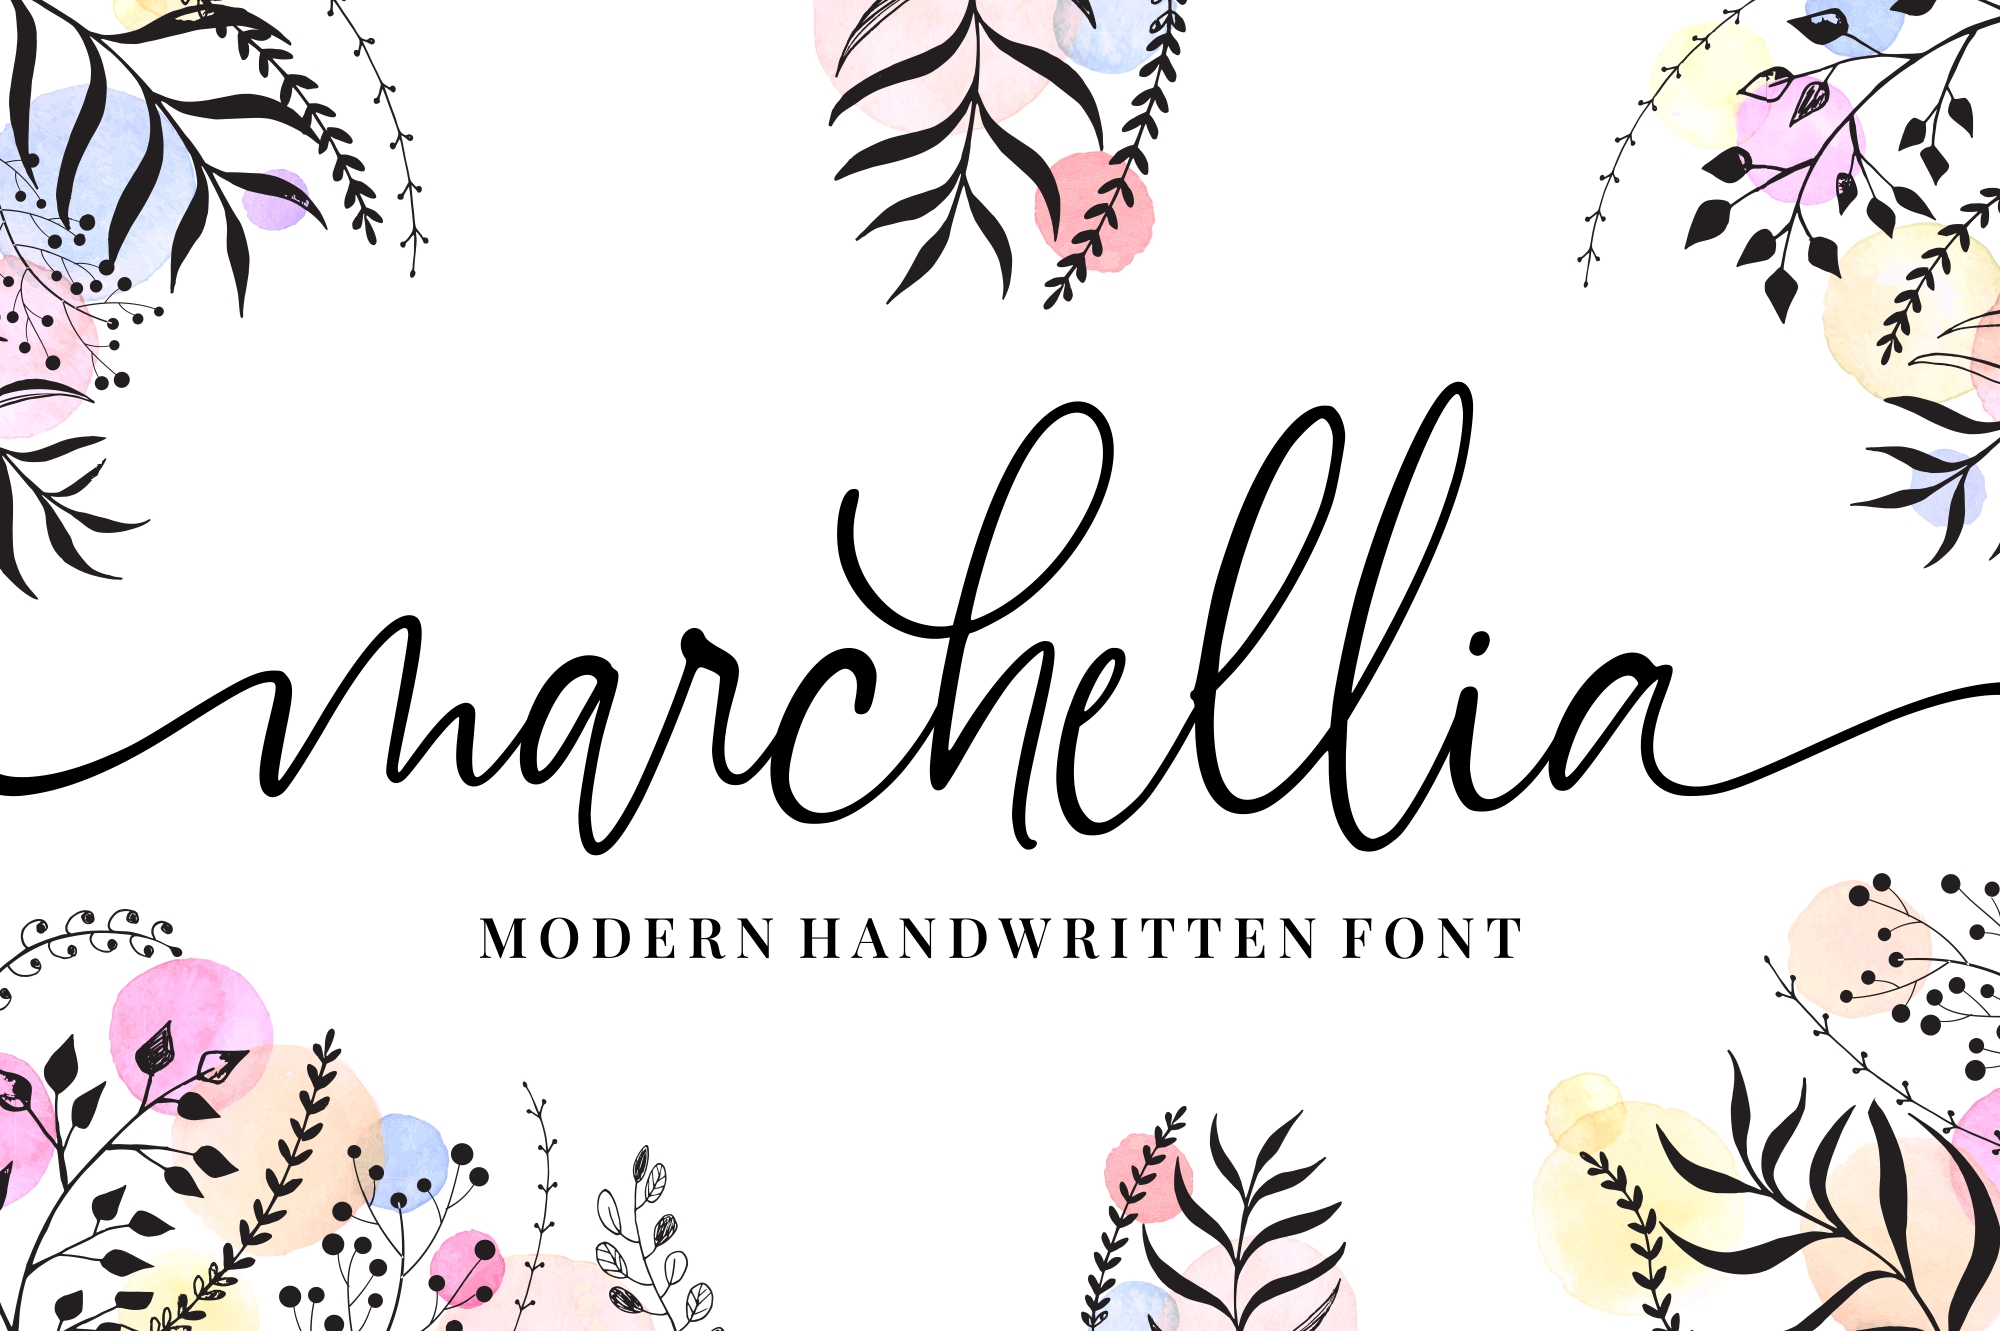 Download Free Marchellia Font By Goodjavastudio Creative Fabrica for Cricut Explore, Silhouette and other cutting machines.